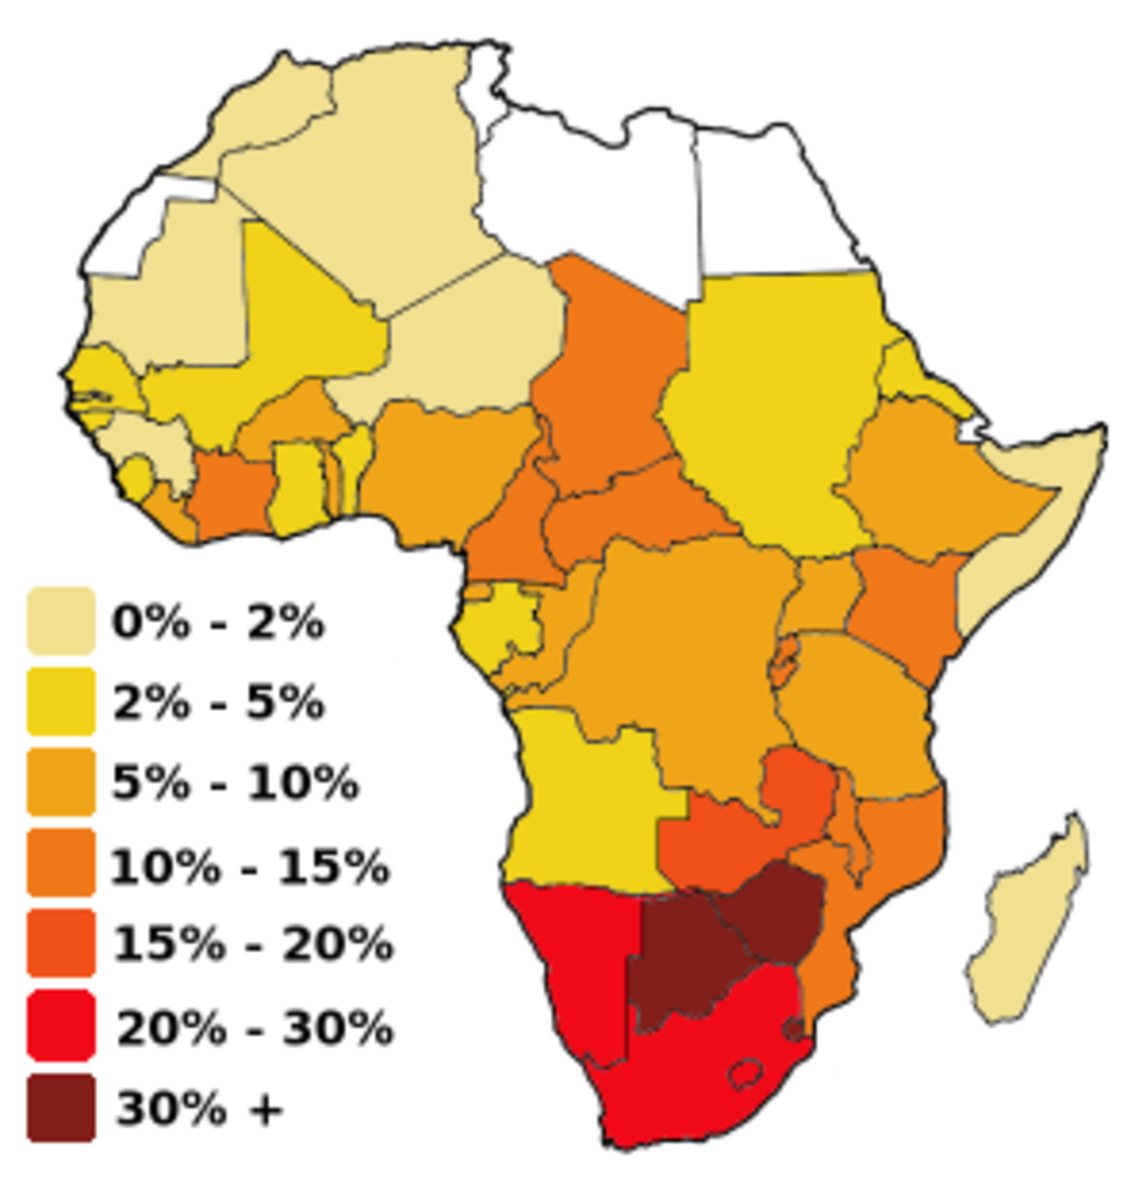 Map of Africa colored according to the percentage of the Adult (Ages 15-49) population with HIV/AIDS